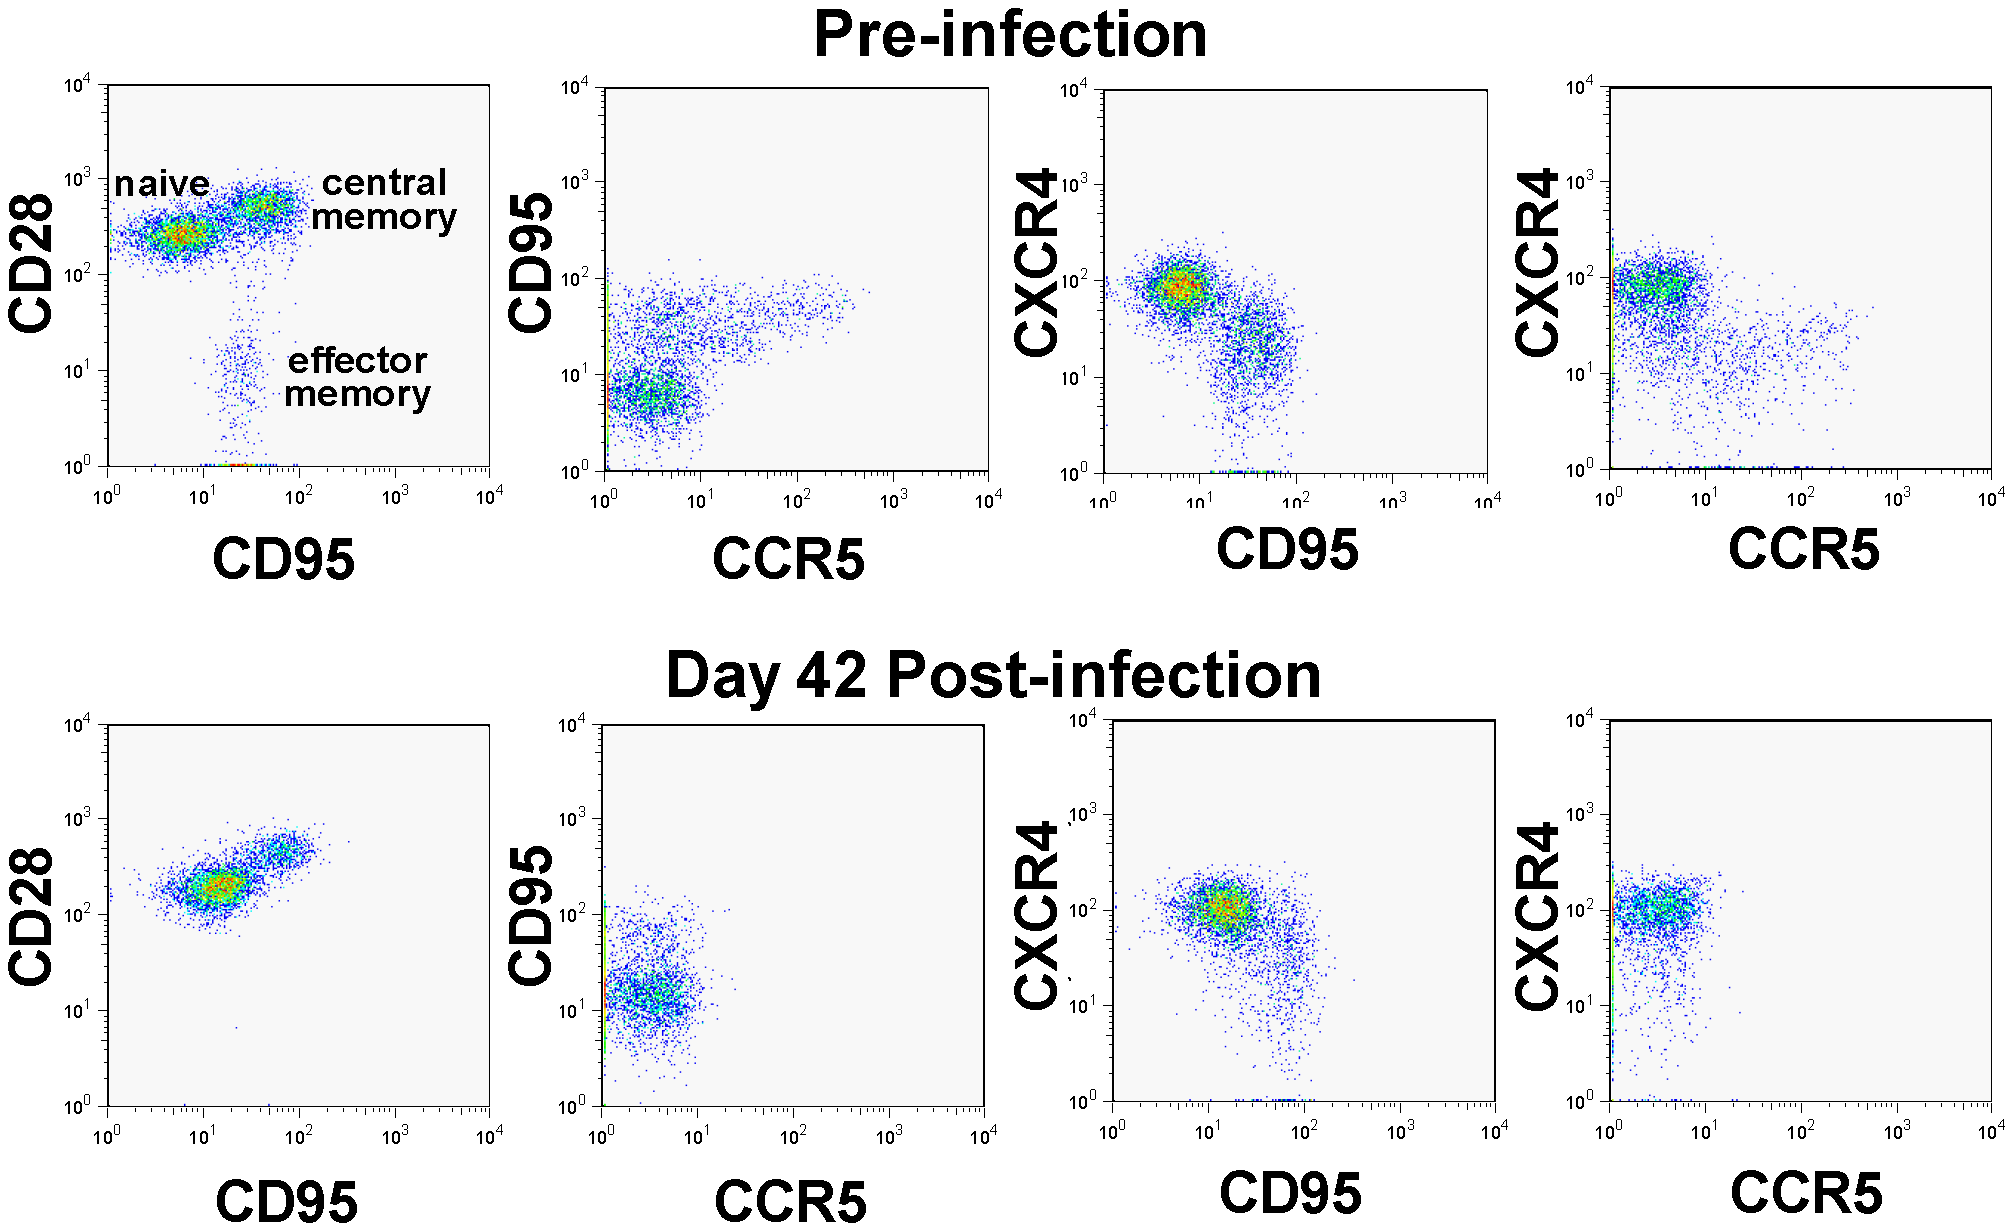 CD4<sup>+</sup> T cell depletion pattern in SIVagm-infected macaques.